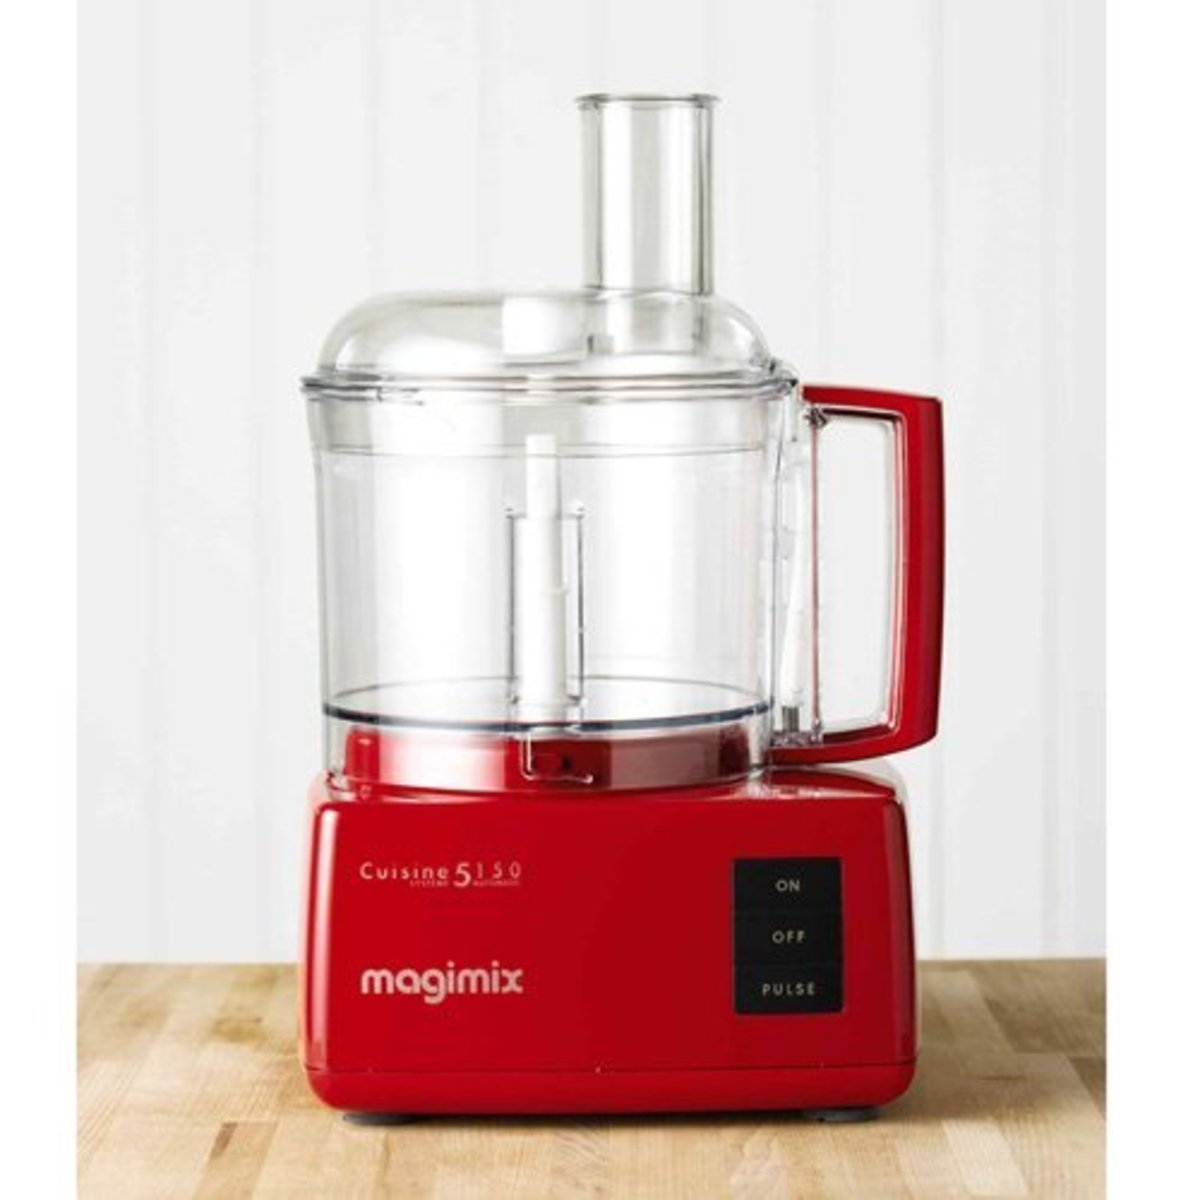 Magimix Cuisine Systeme 5150 food processor in red